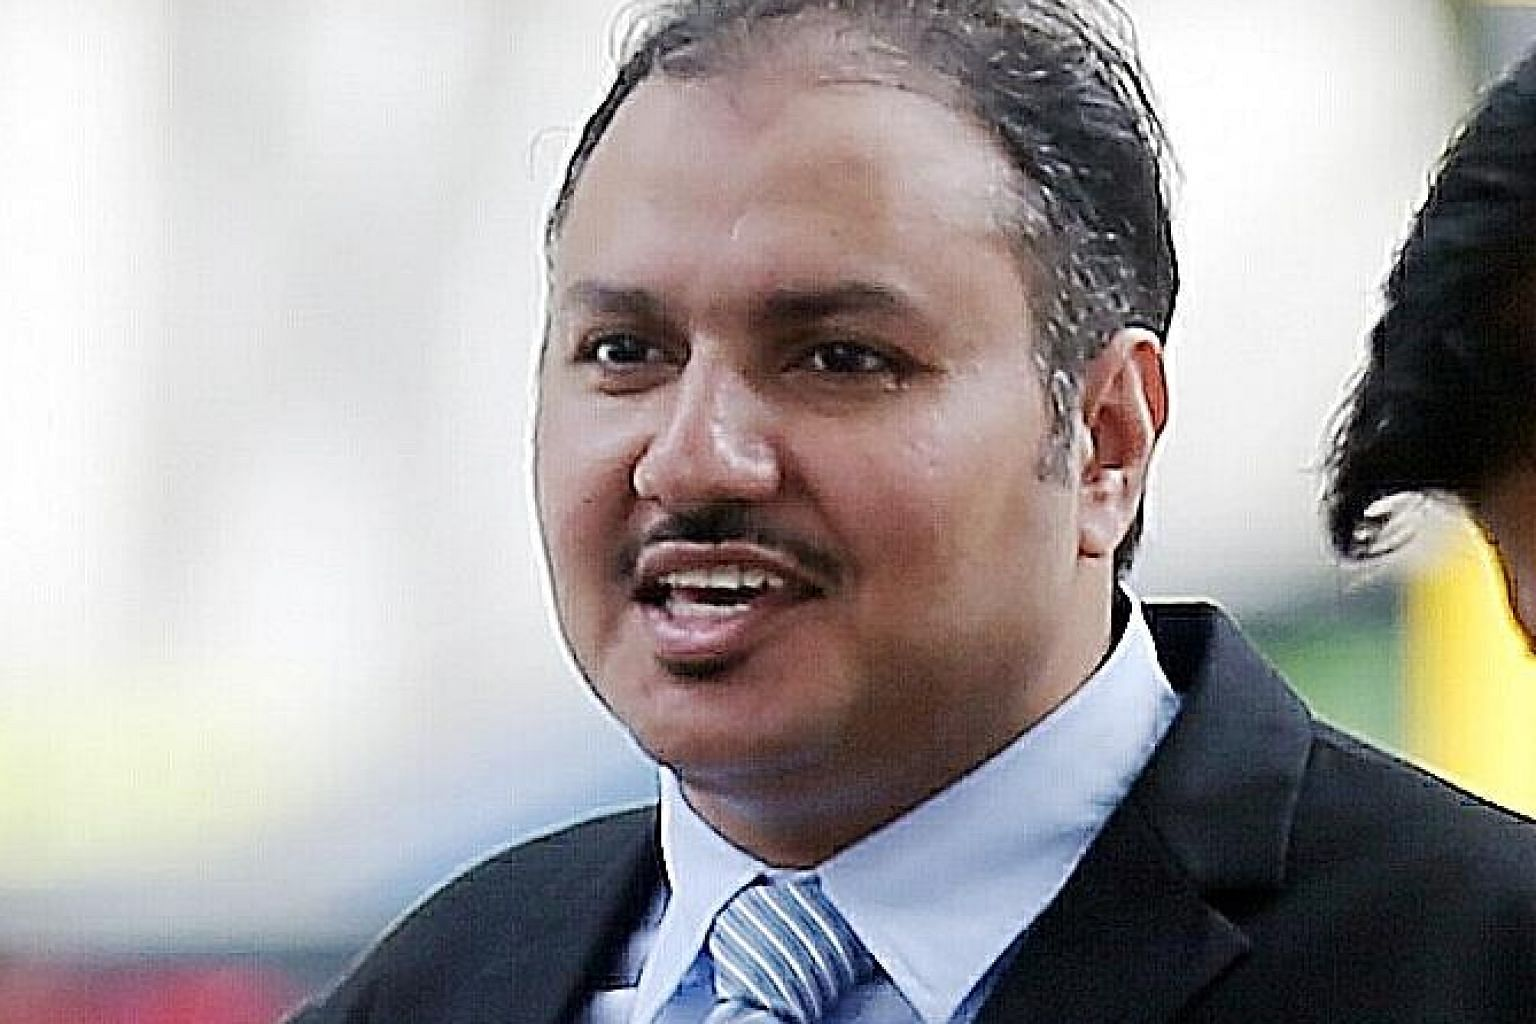 Bander Yahya A. Alzahrani, a Saudi diplomat who was stationed in Beijing, molested an intern at a hotel on Sentosa in August last year. The judge dismissed his appeal, and said his sentence of 26 months and a week in jail as well as four strokes of t